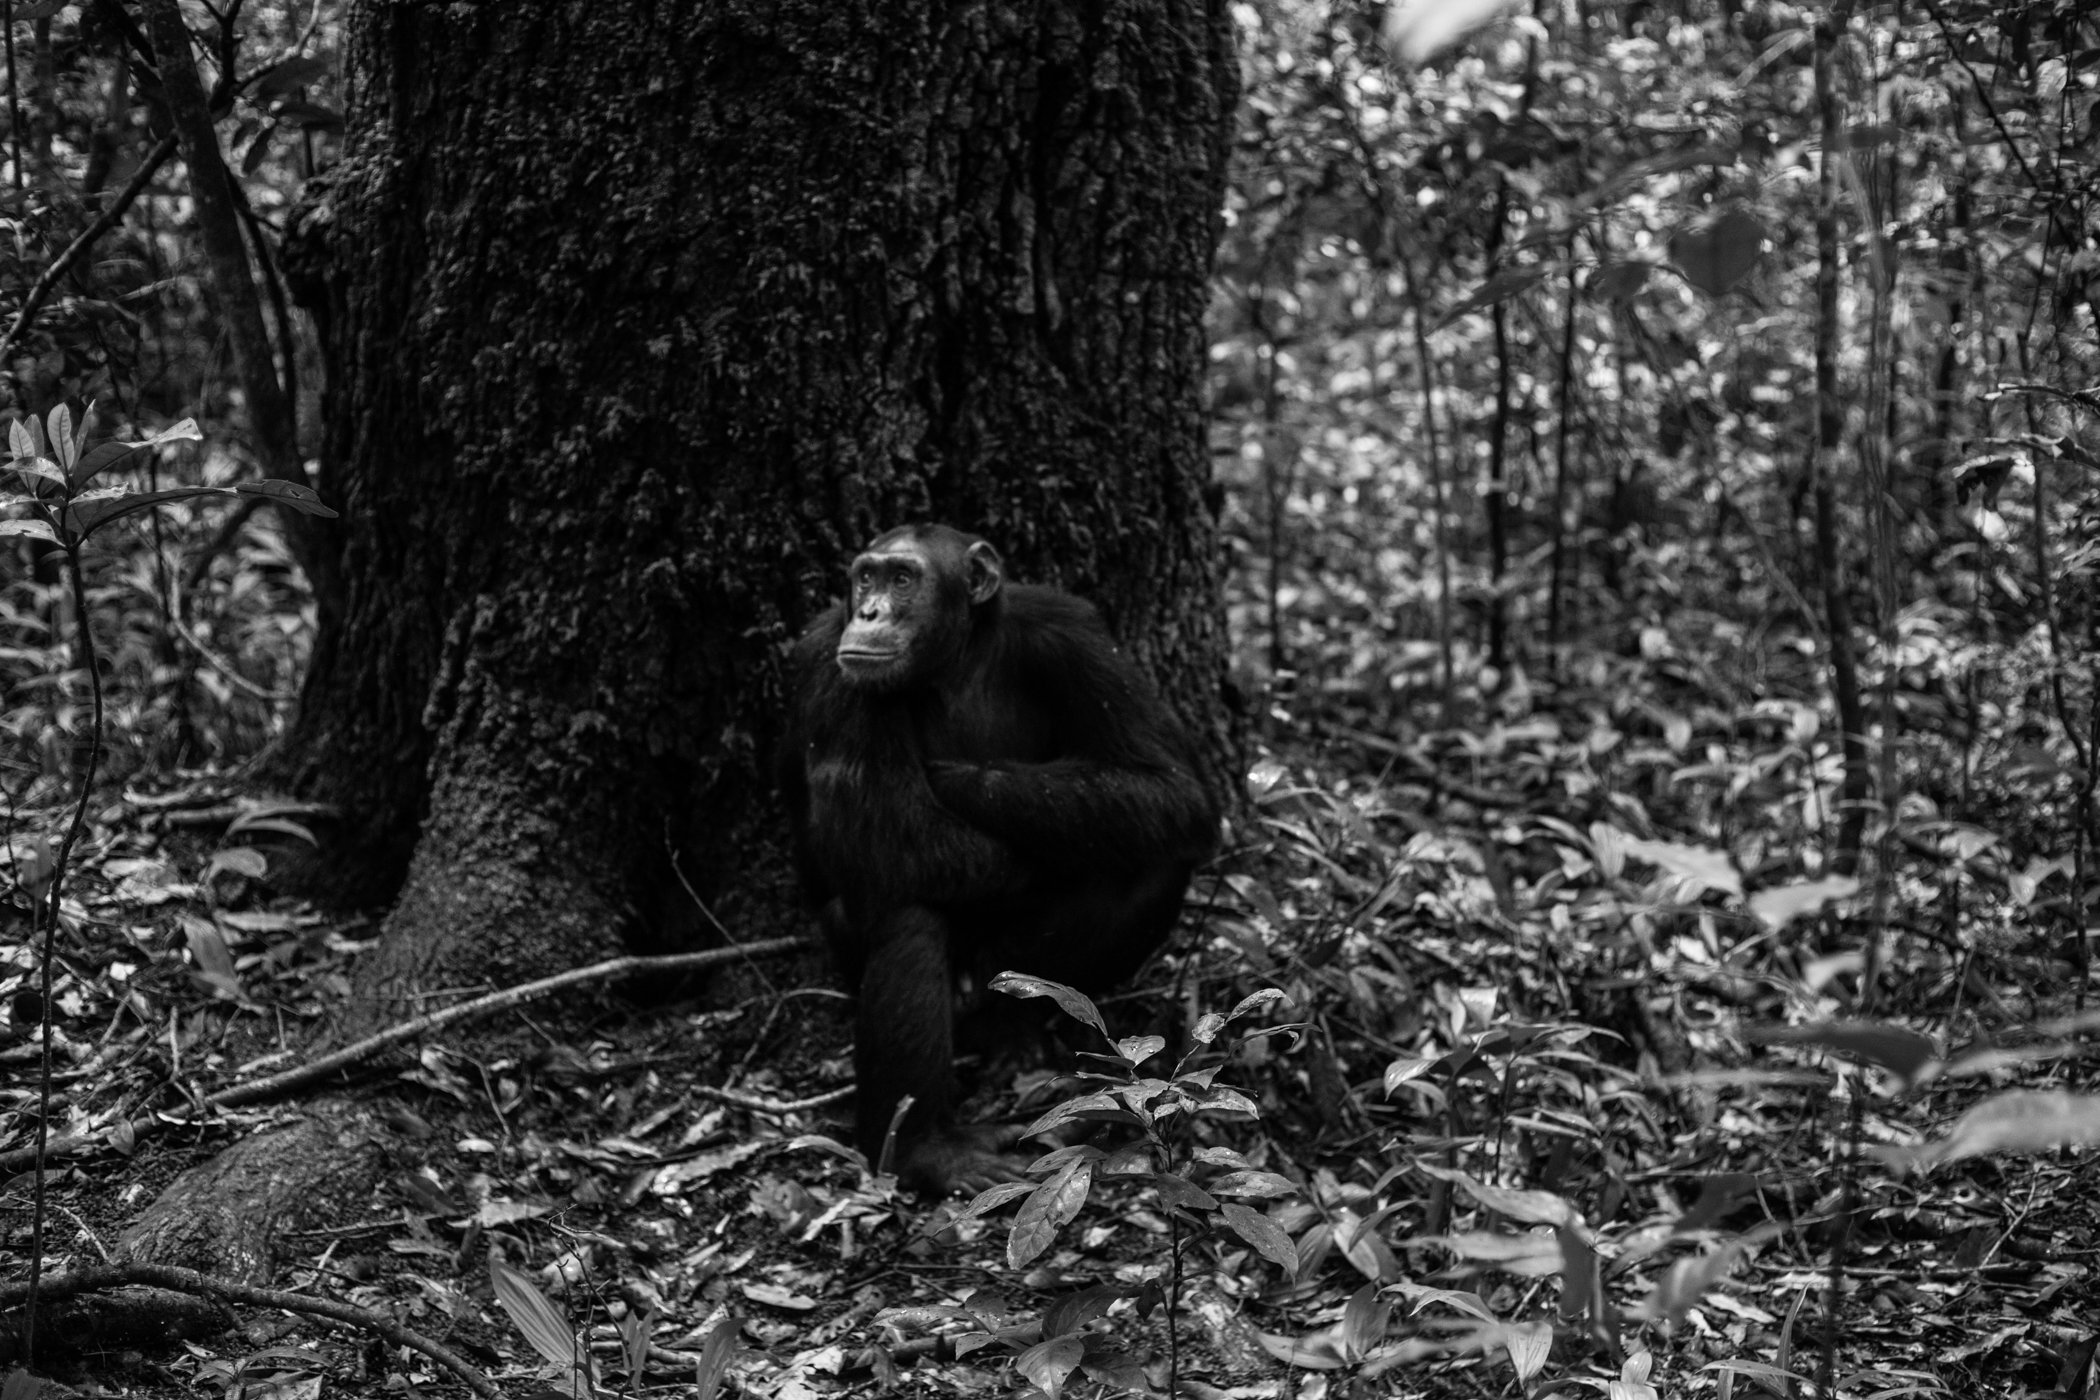 Chimp_Forest_Uganda-IMG_1318-untitled.jpg